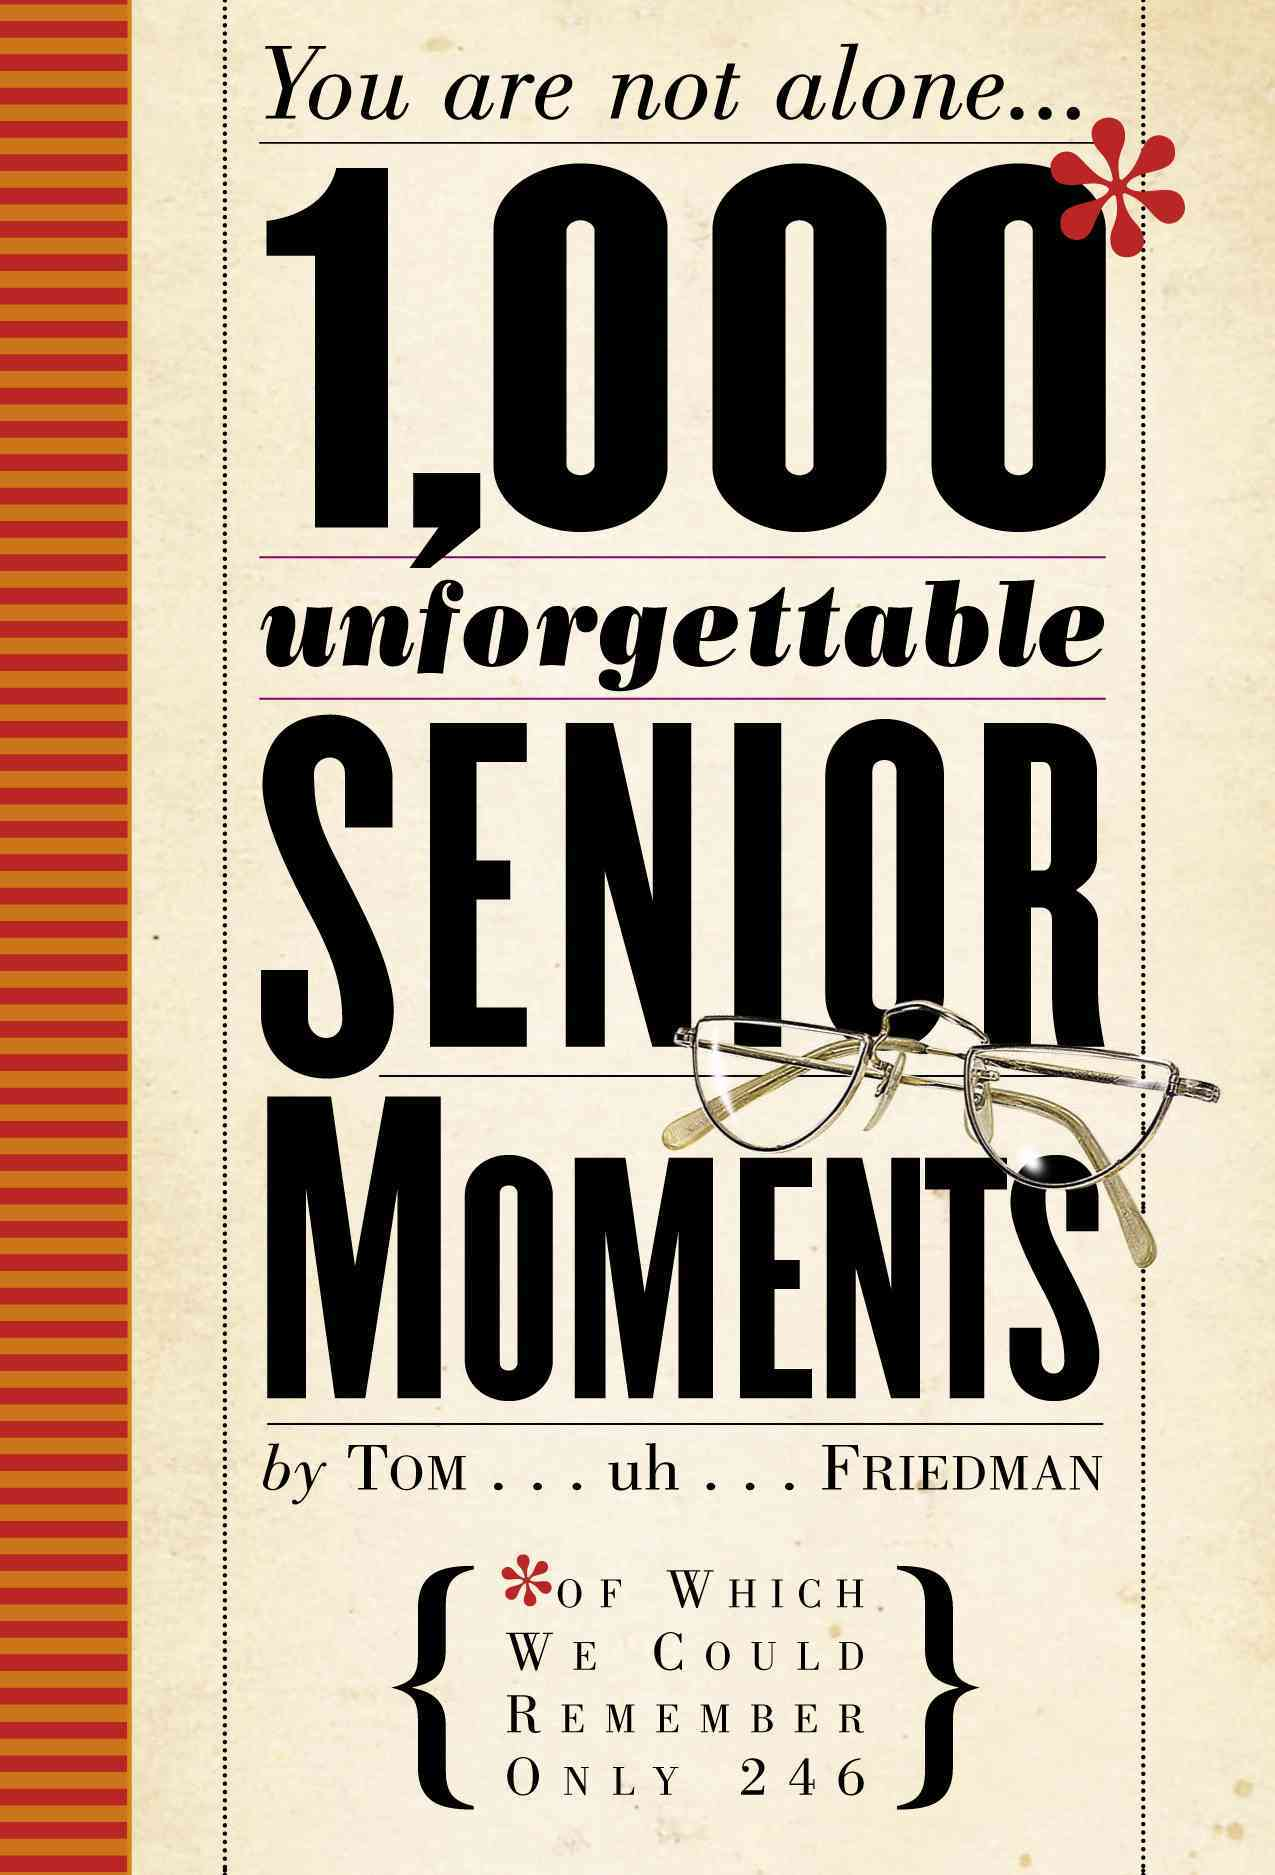 1,000 Unforgettable Senior Moments: You are not alone... (of Which we could remember only 246) (Hardcover)